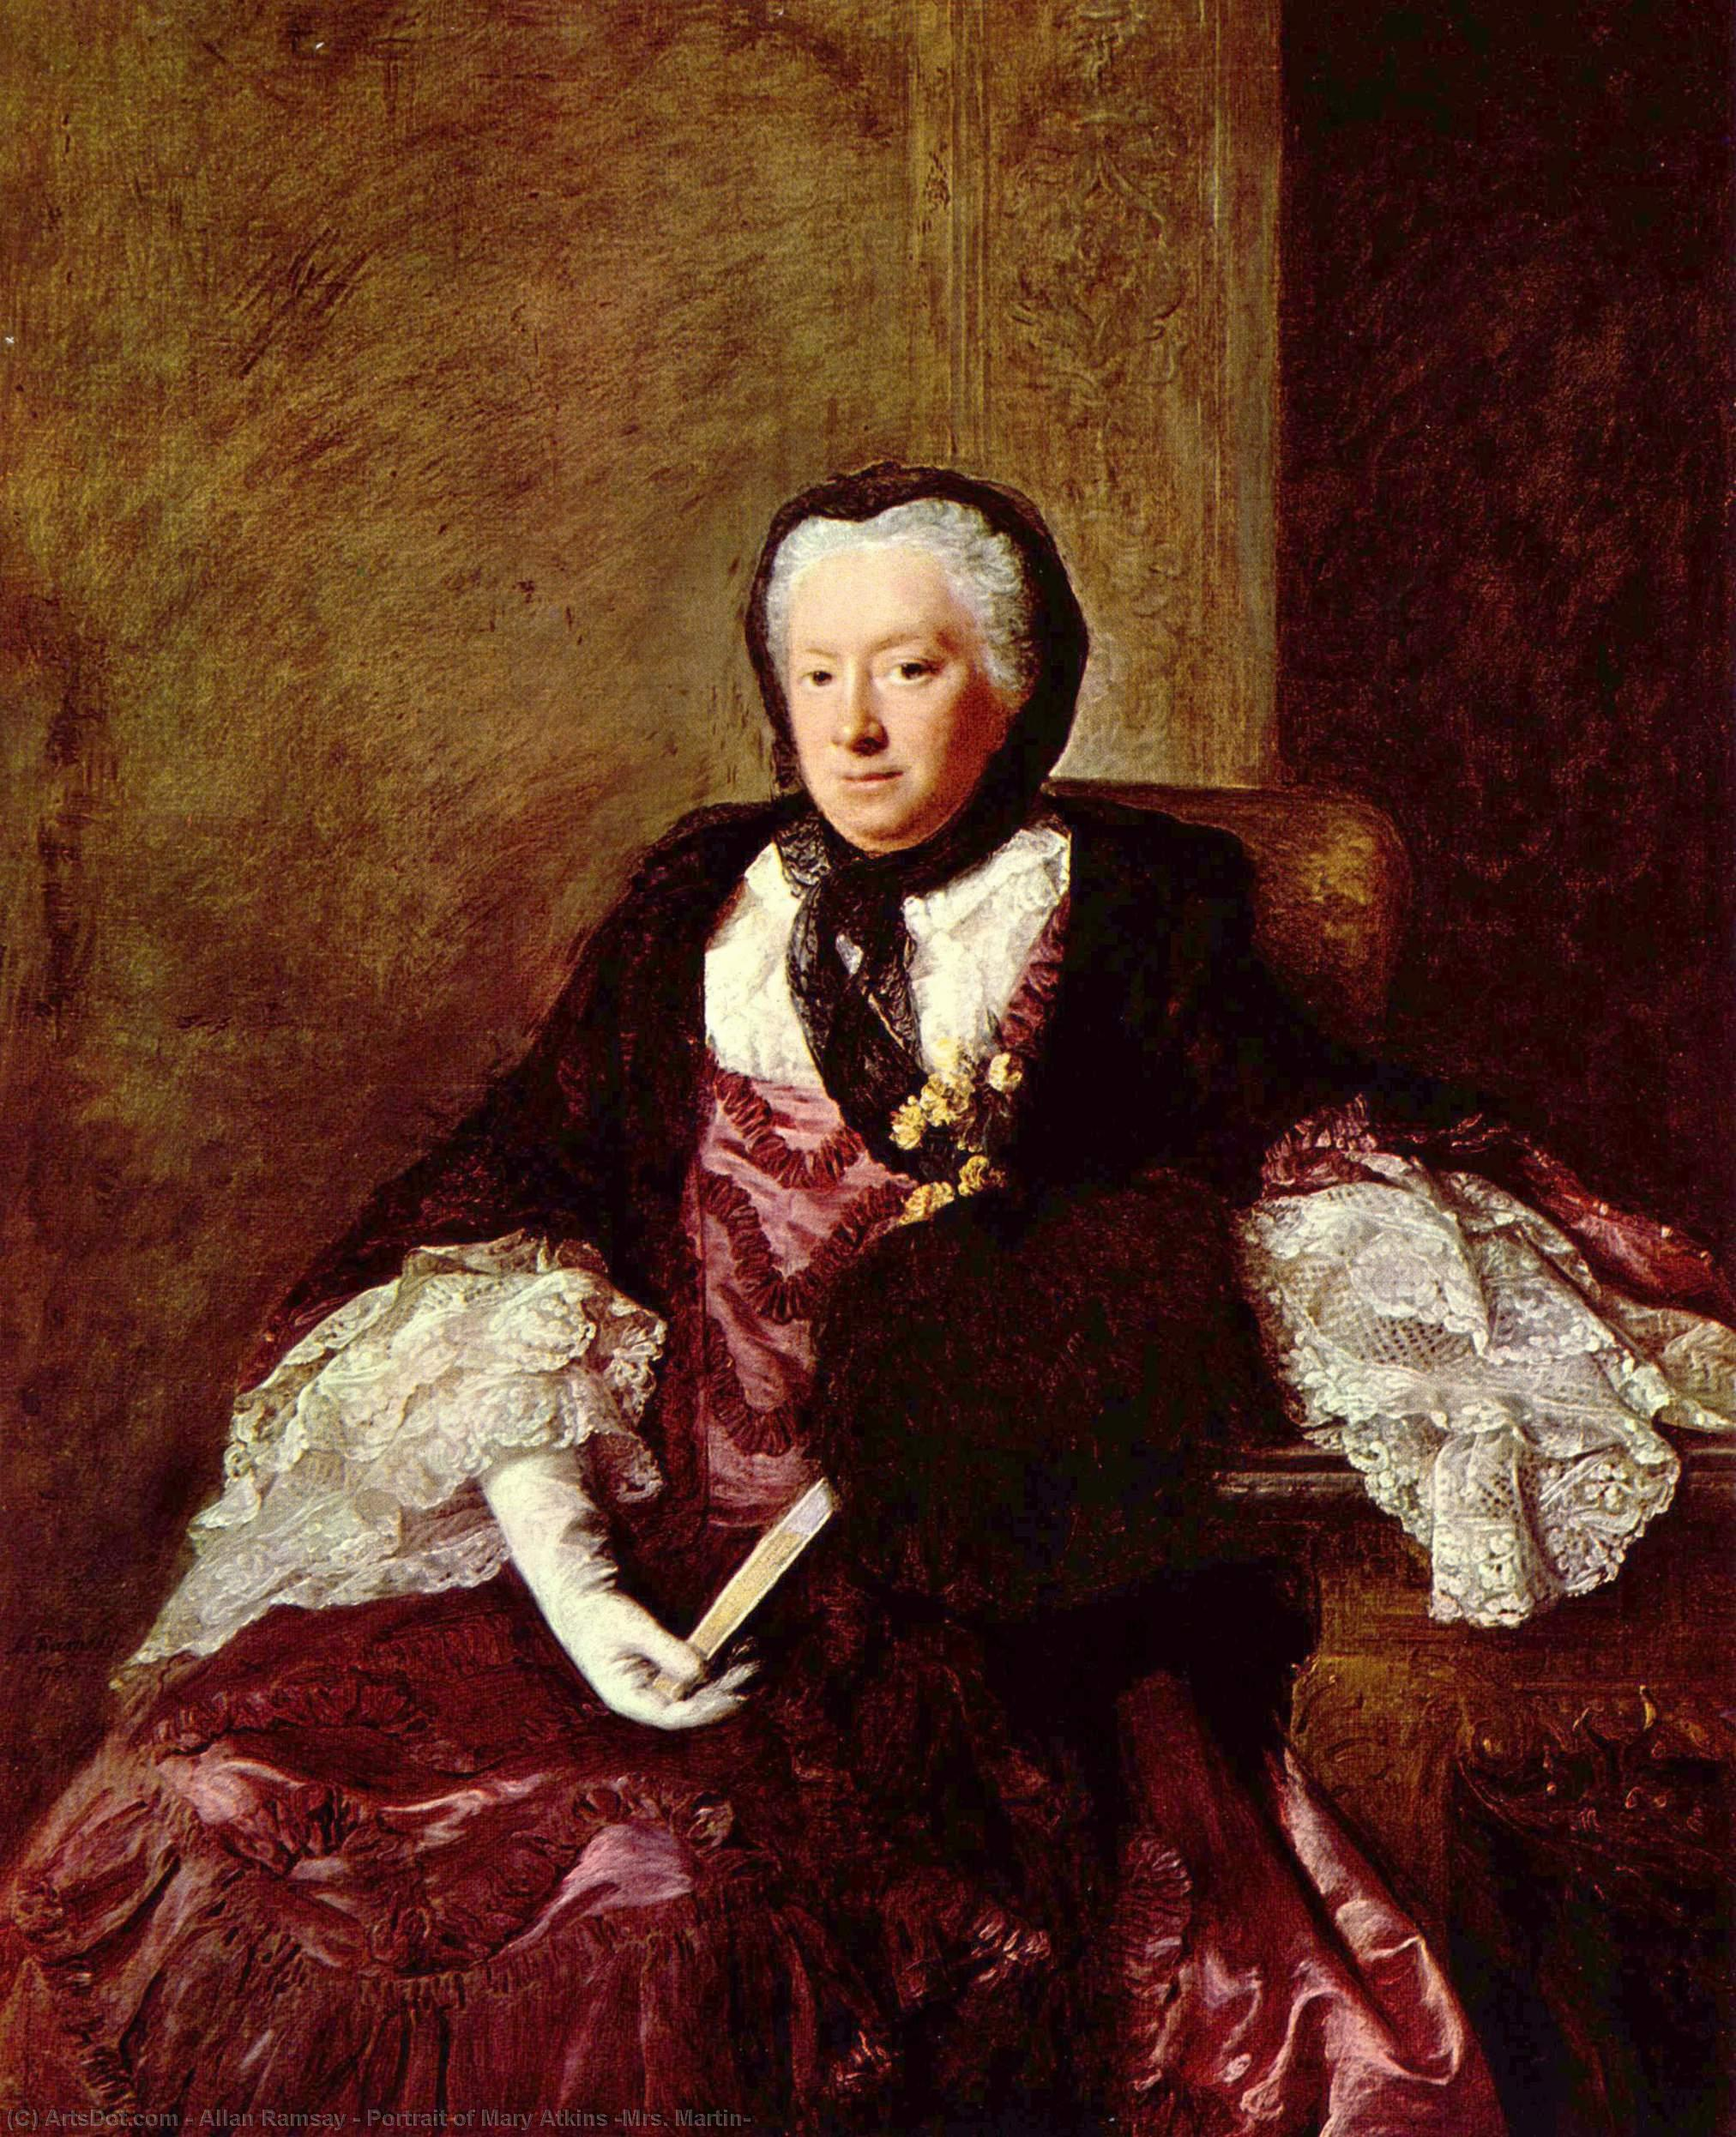 Wikioo.org - The Encyclopedia of Fine Arts - Painting, Artwork by Allan Ramsay - Portrait of Mary Atkins (Mrs. Martin)